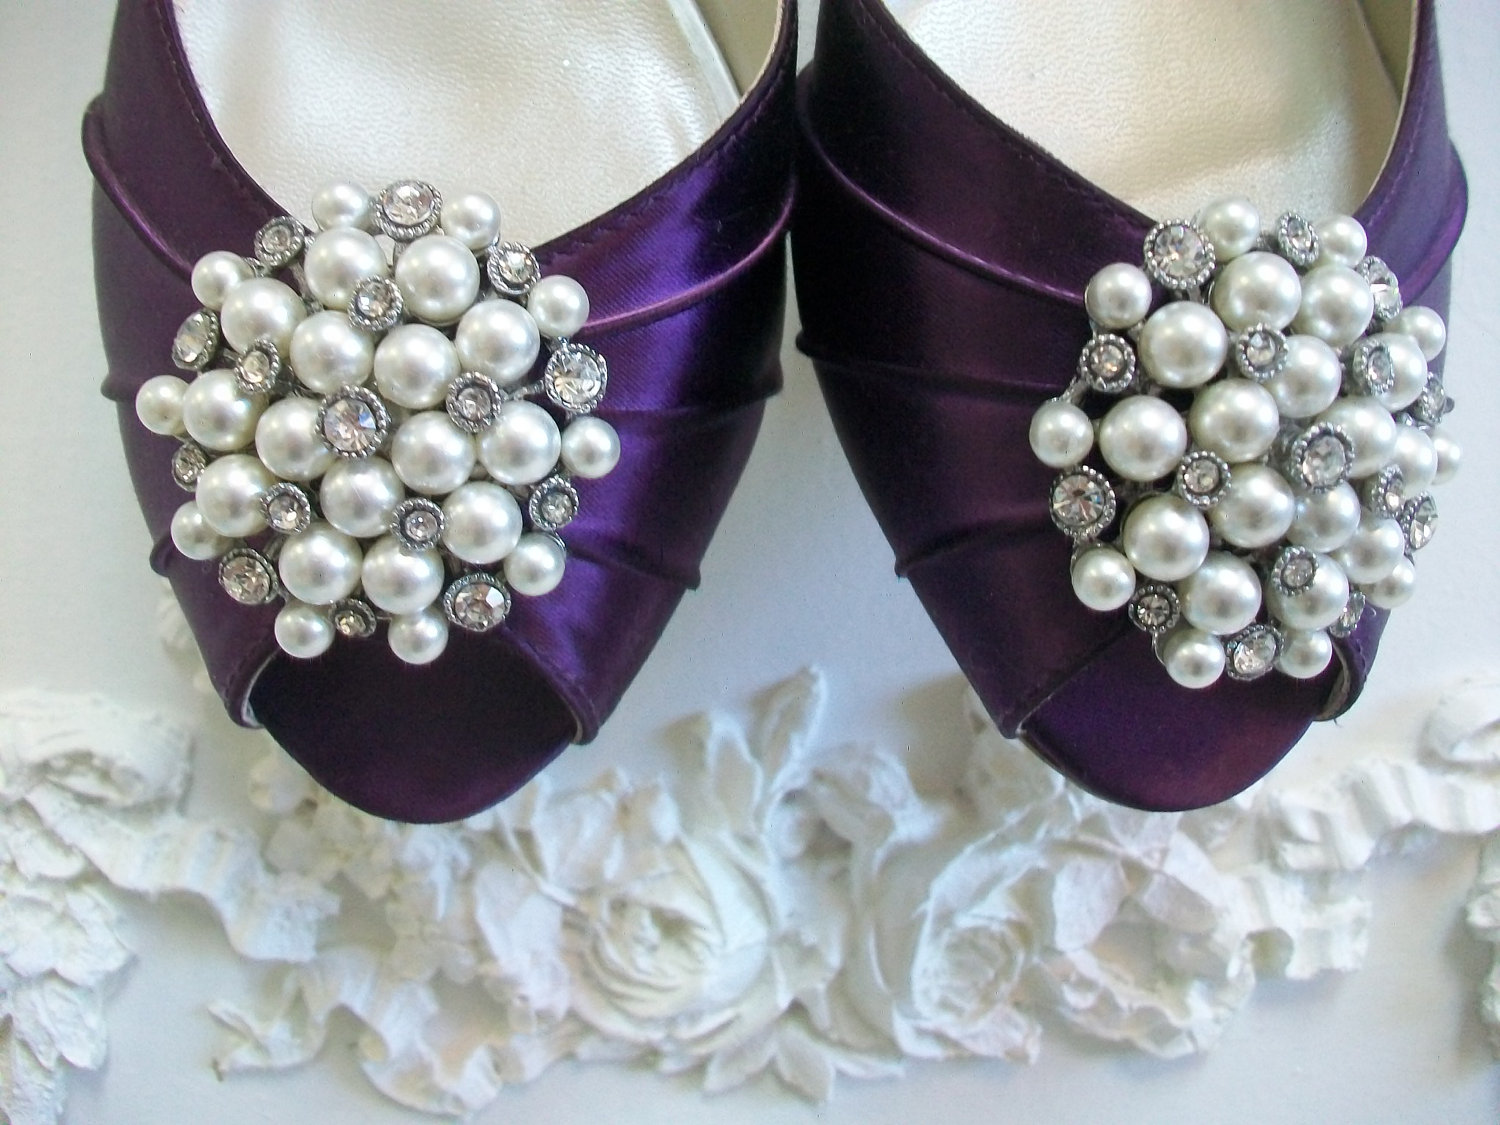 Pearl wedding accessories handmade etsy wedding finds shoe for Where to buy wedding accessories